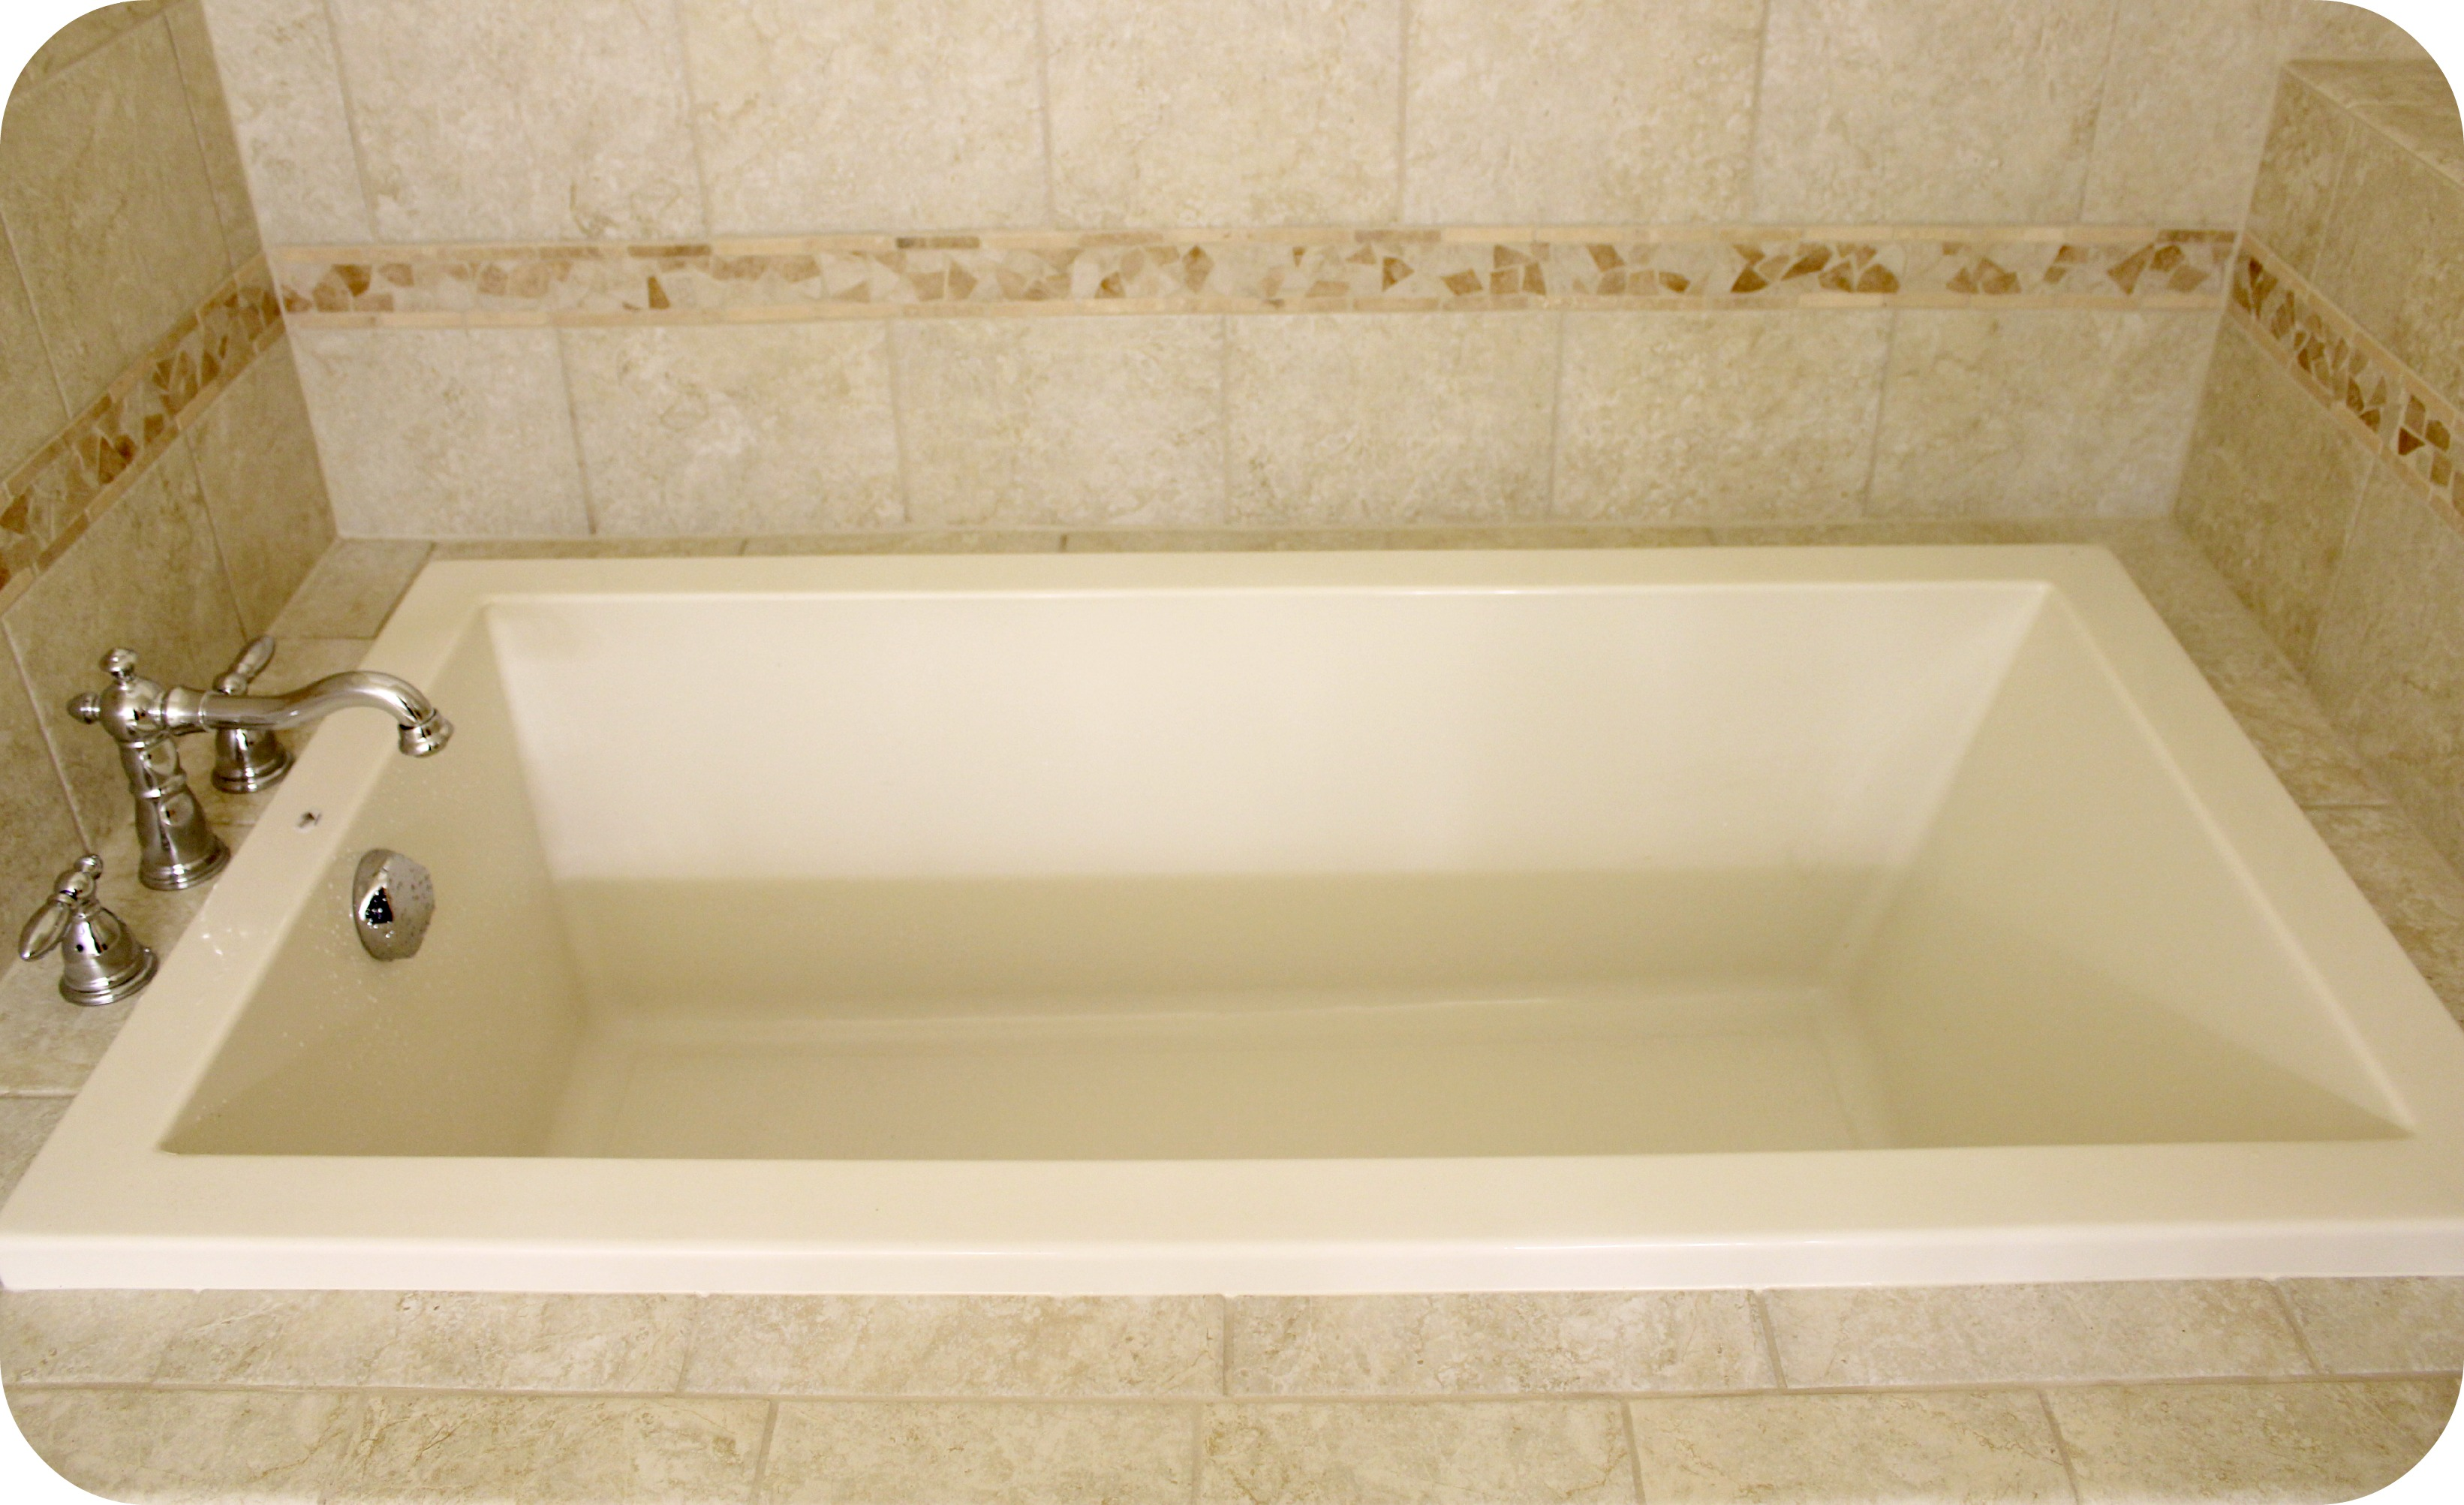 deep product hand model soaking bathtub drain projects hawkins americast tub by soaker left right dxv recessed byrdcliffe